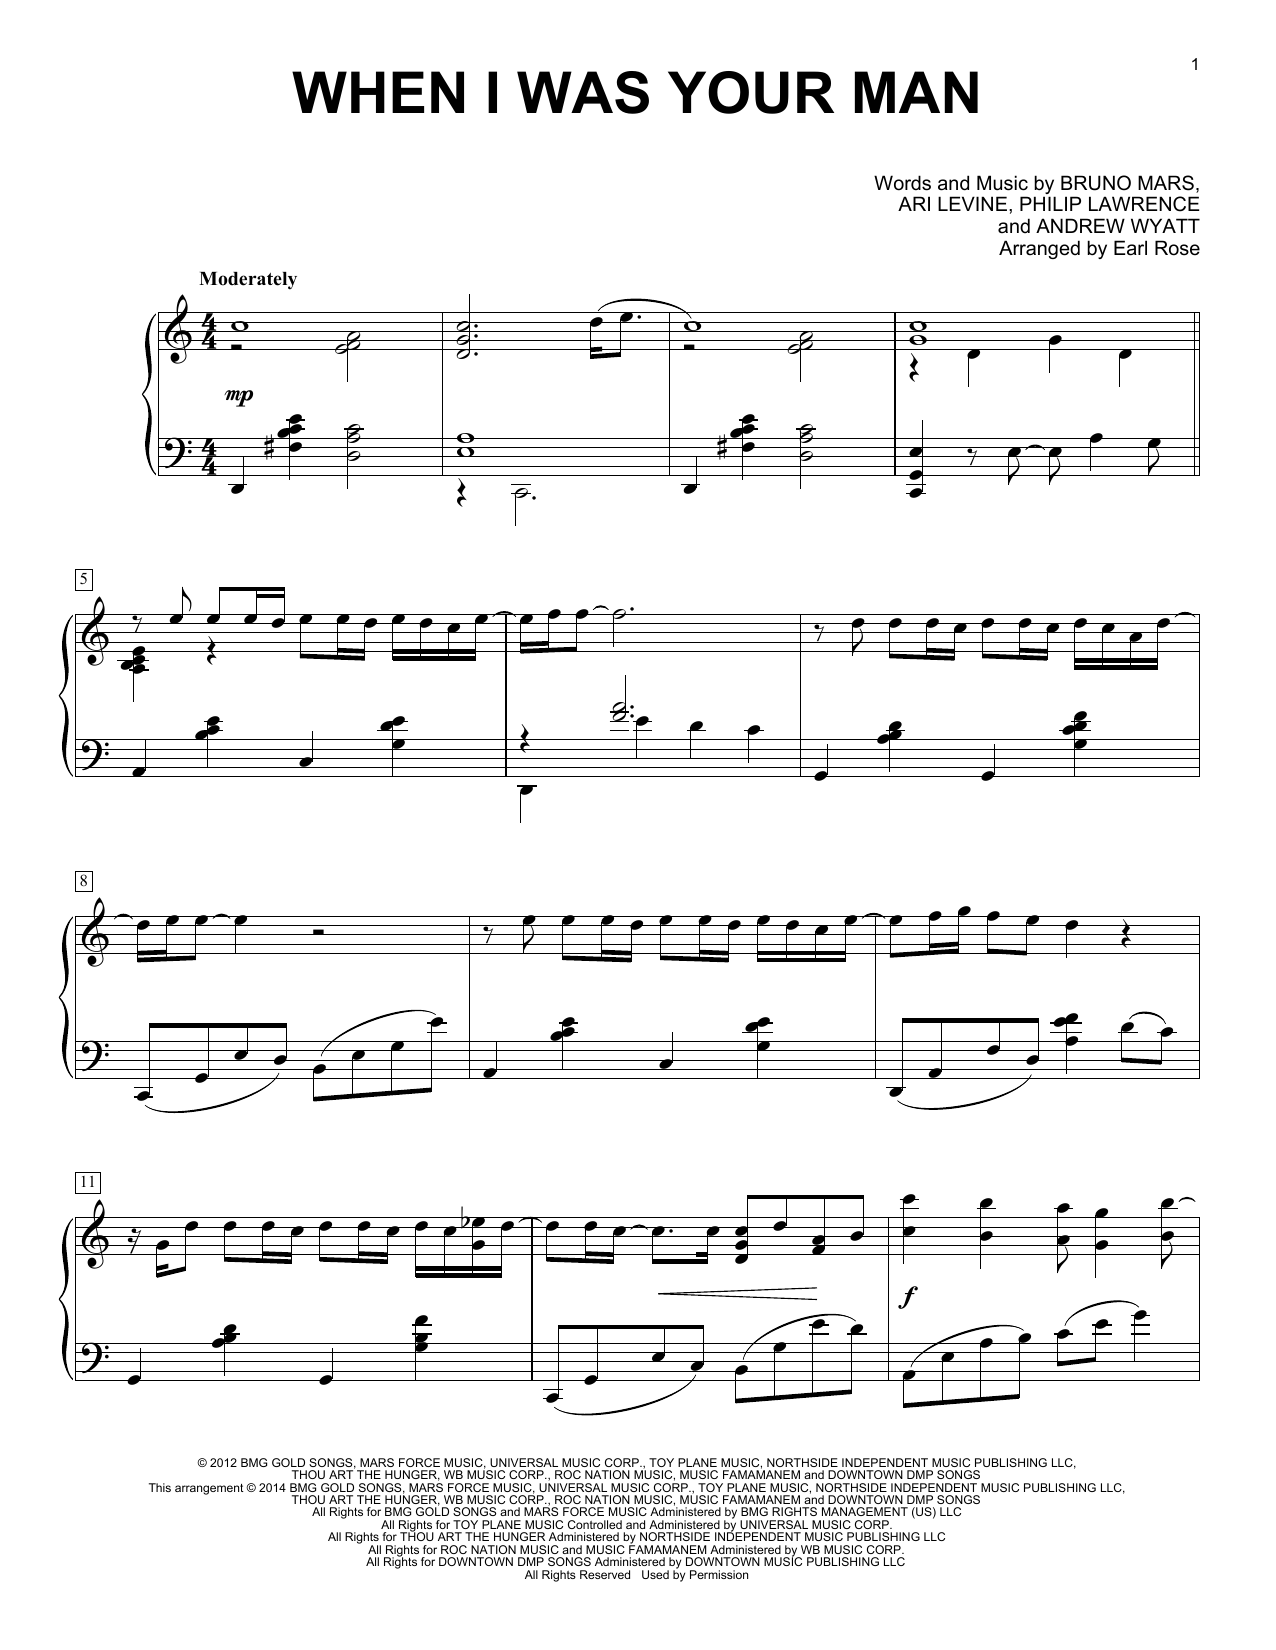 Earl Rose When I Was Your Man sheet music notes and chords. Download Printable PDF.